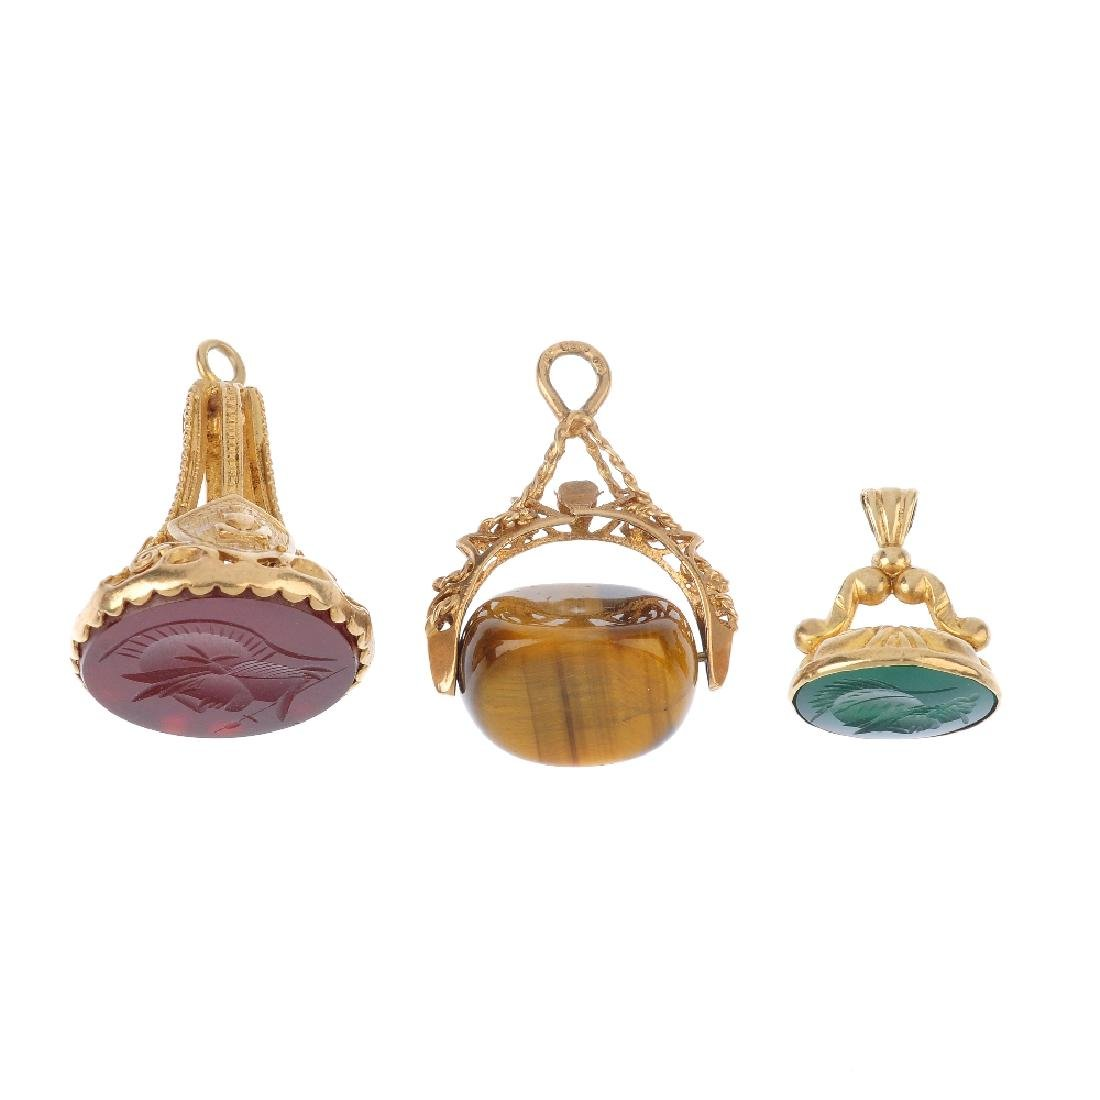 Three 9ct gold hardstone fobs. To include a carved